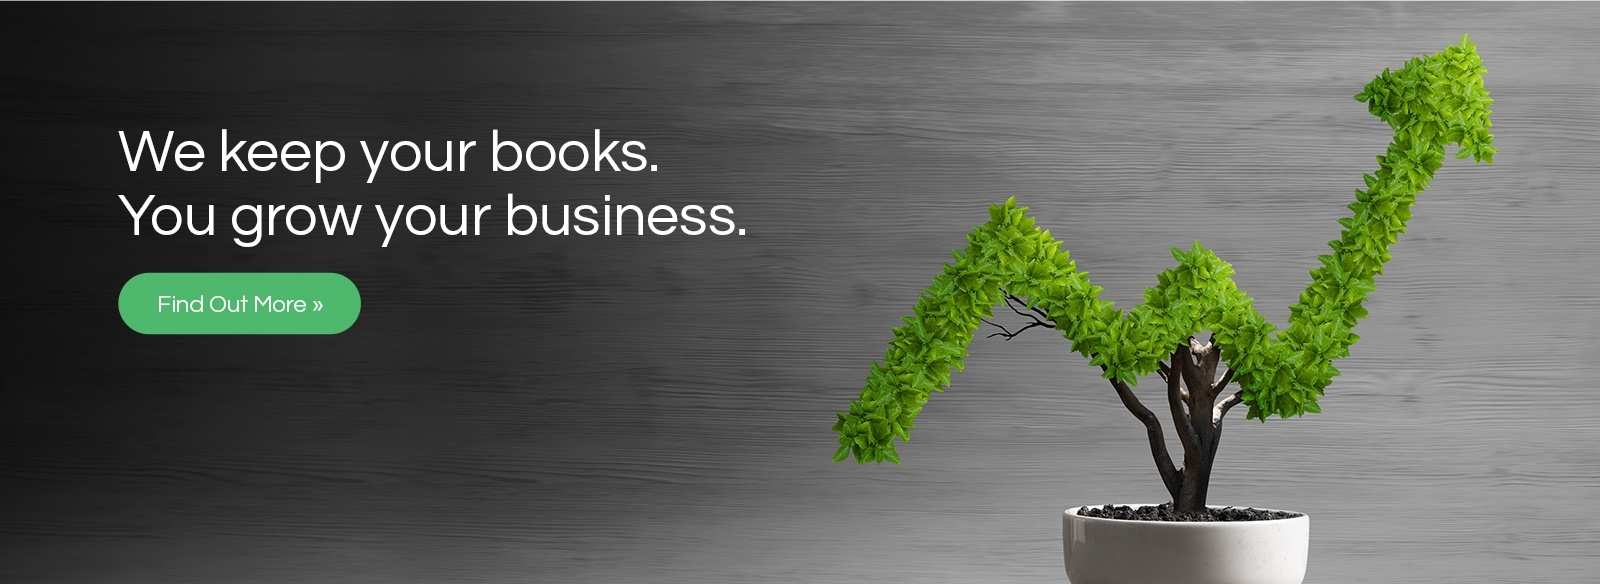 We Keep Your Books. You Grow Your Business